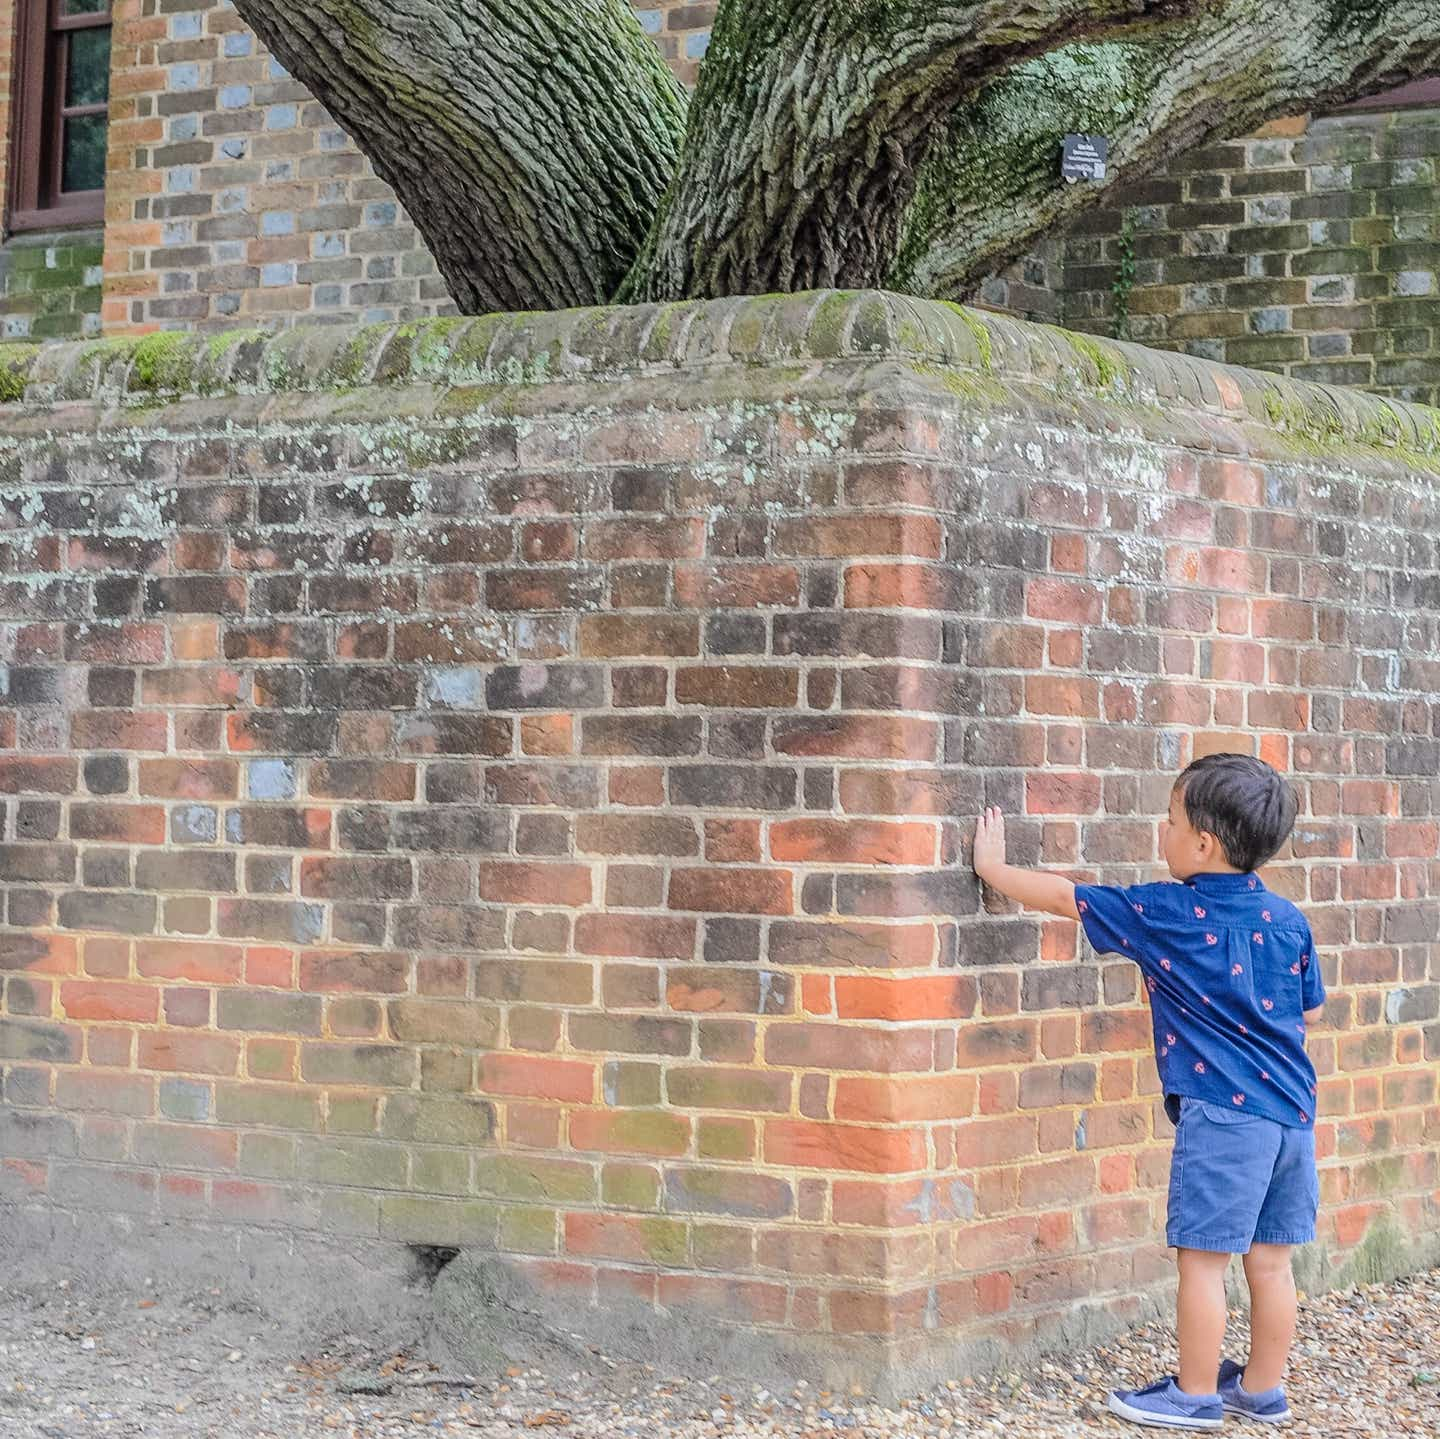 Angelica's son putting his hand on a historic wall in Williamsburg, Virginia.